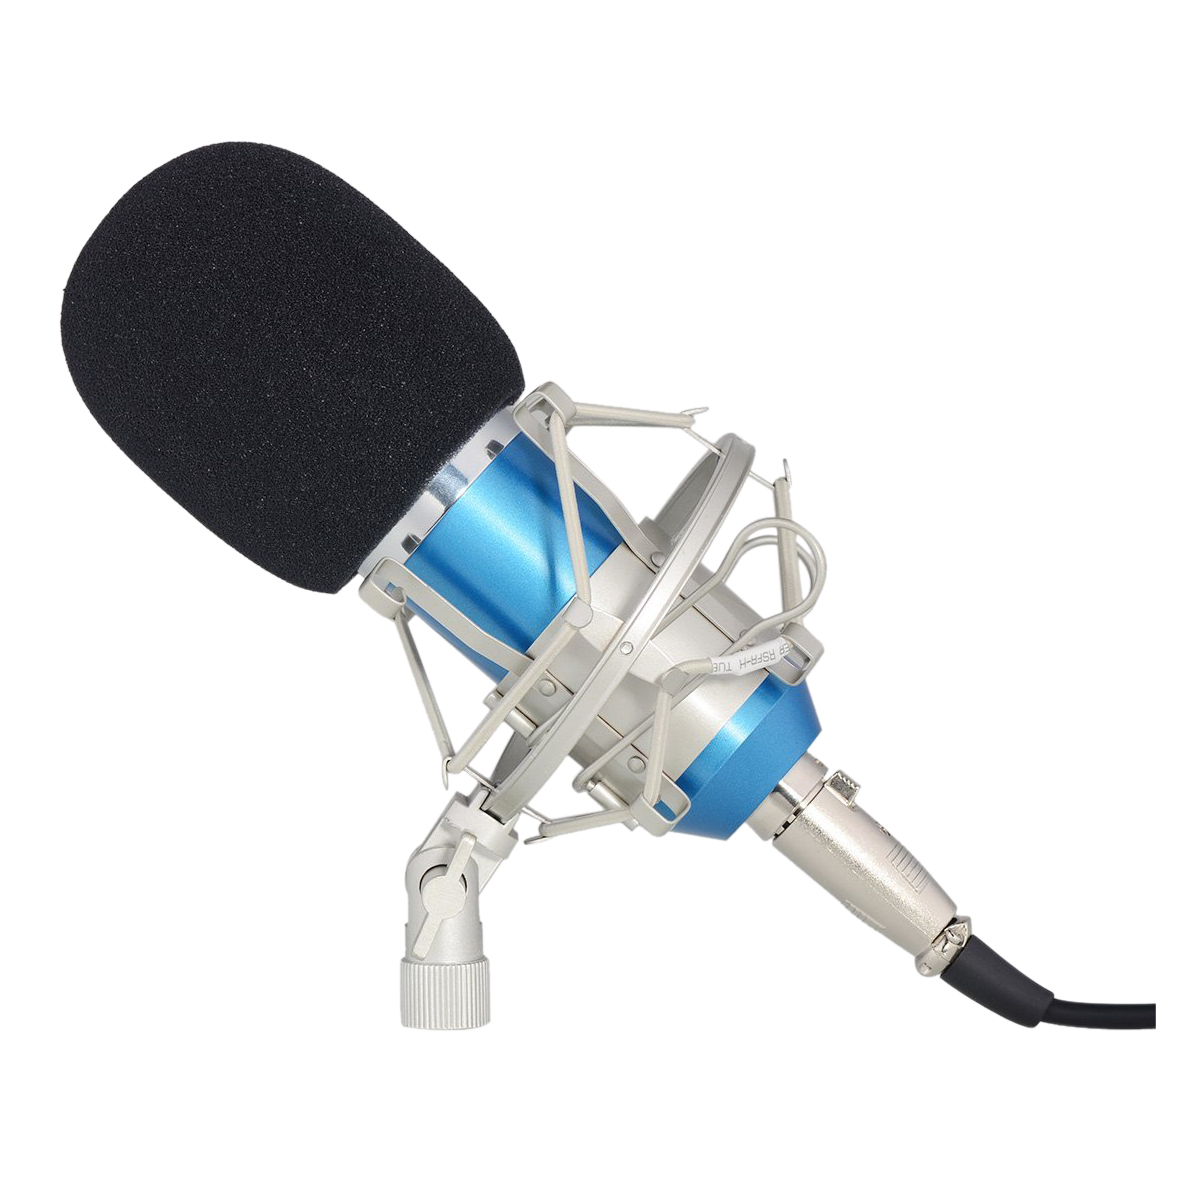 Studio Recording Condenser miniphone For Radio Broadcasting Voice-Over Sound Studio, Home Recording, Gaming and Video Chat